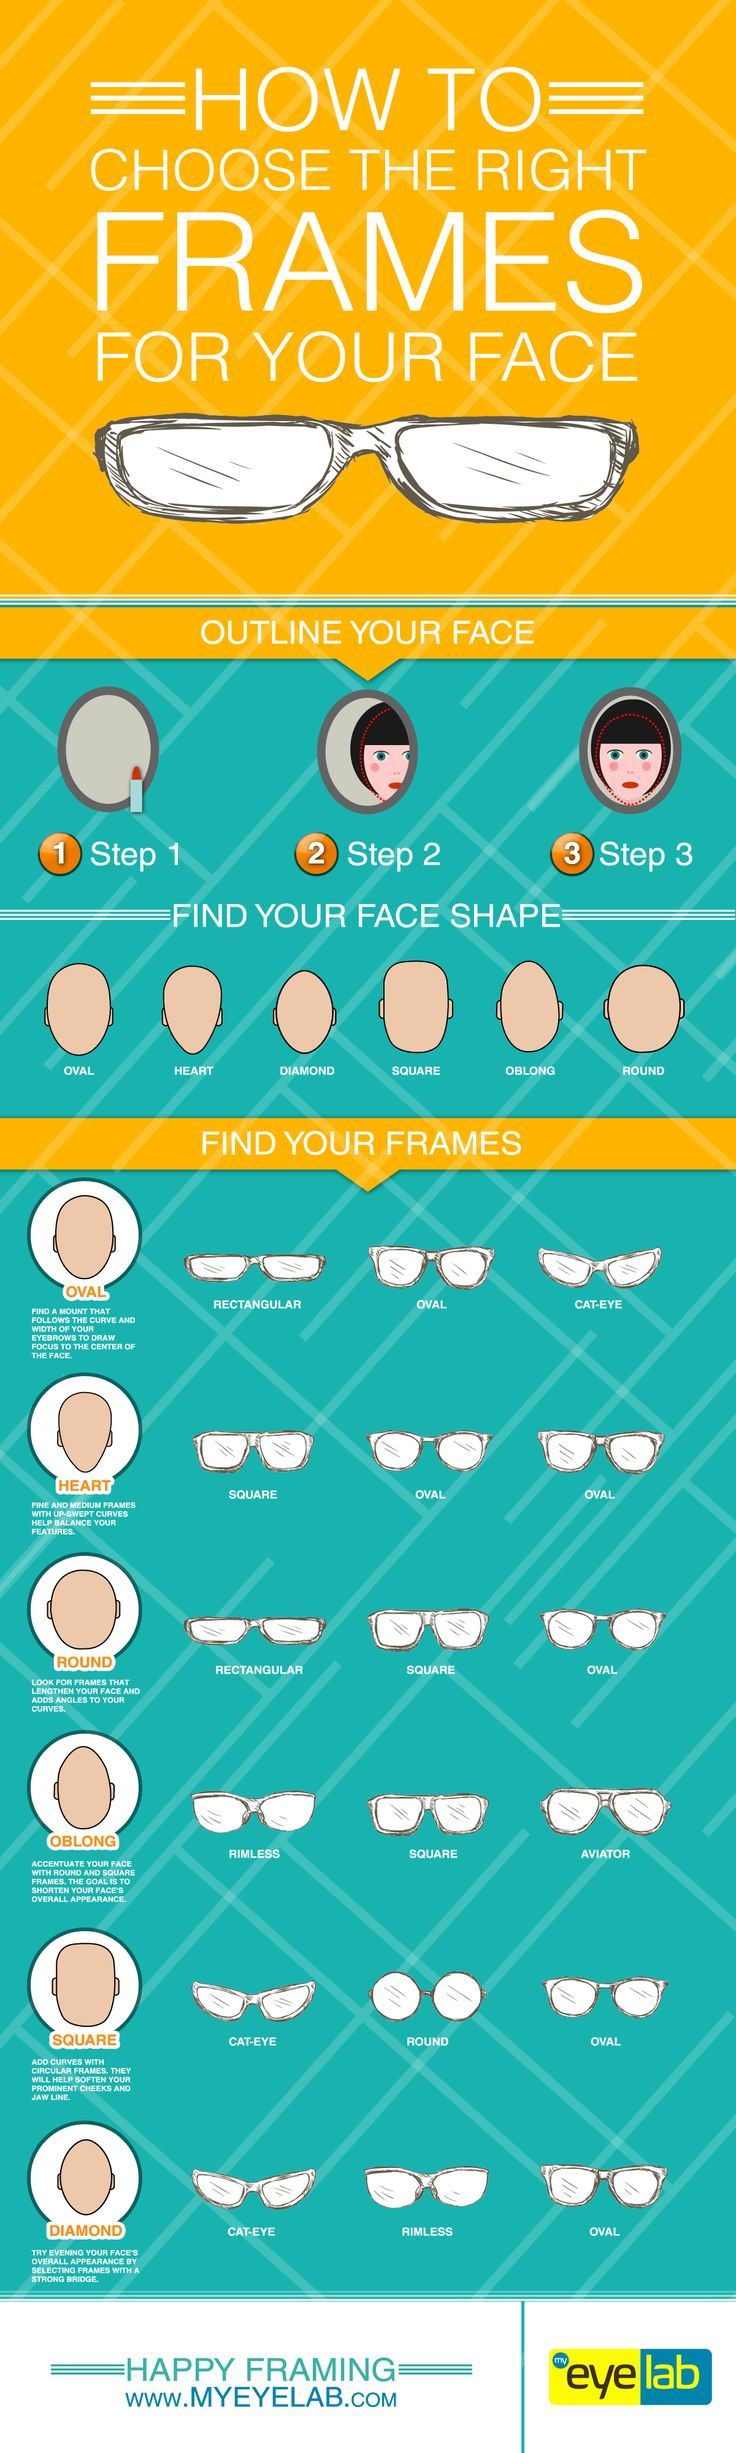 42 best images about Right frame for different faces on ...